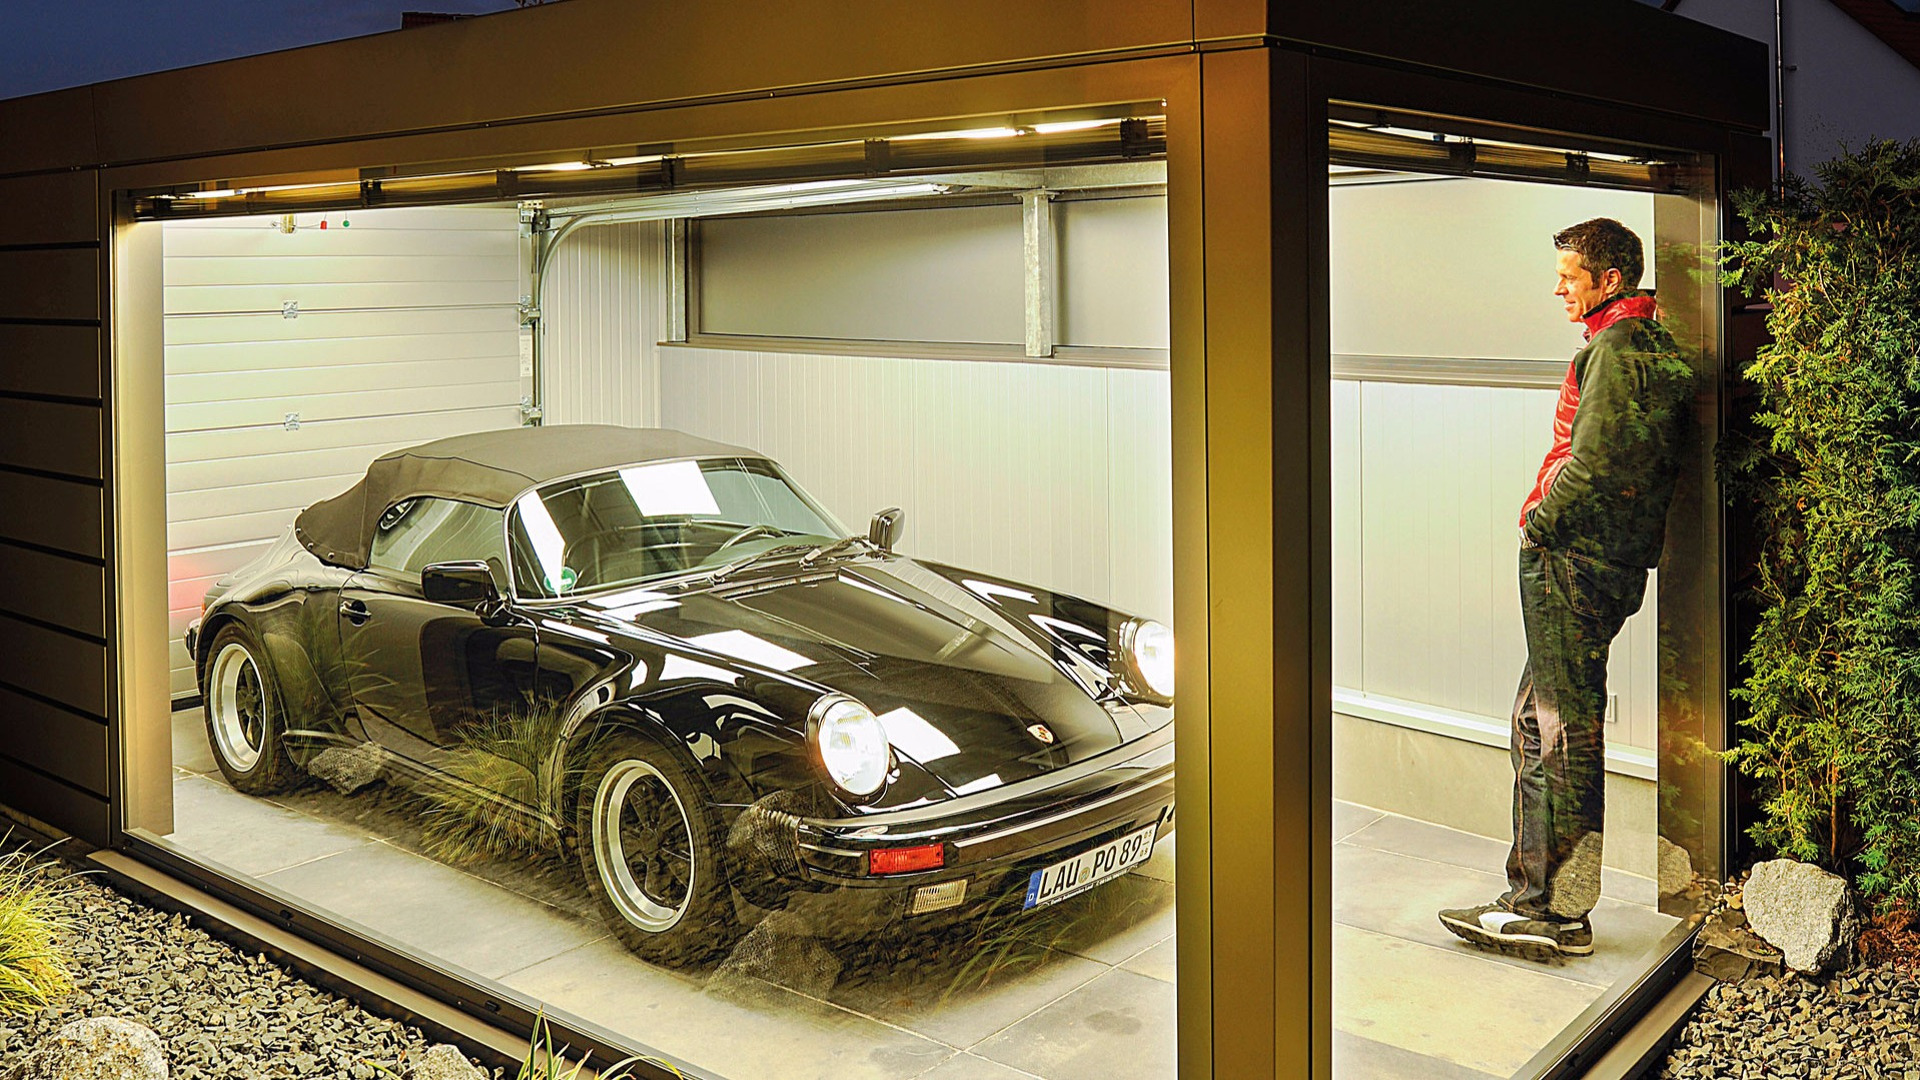 Porsche 911 owner builds bonkers garage for all the right